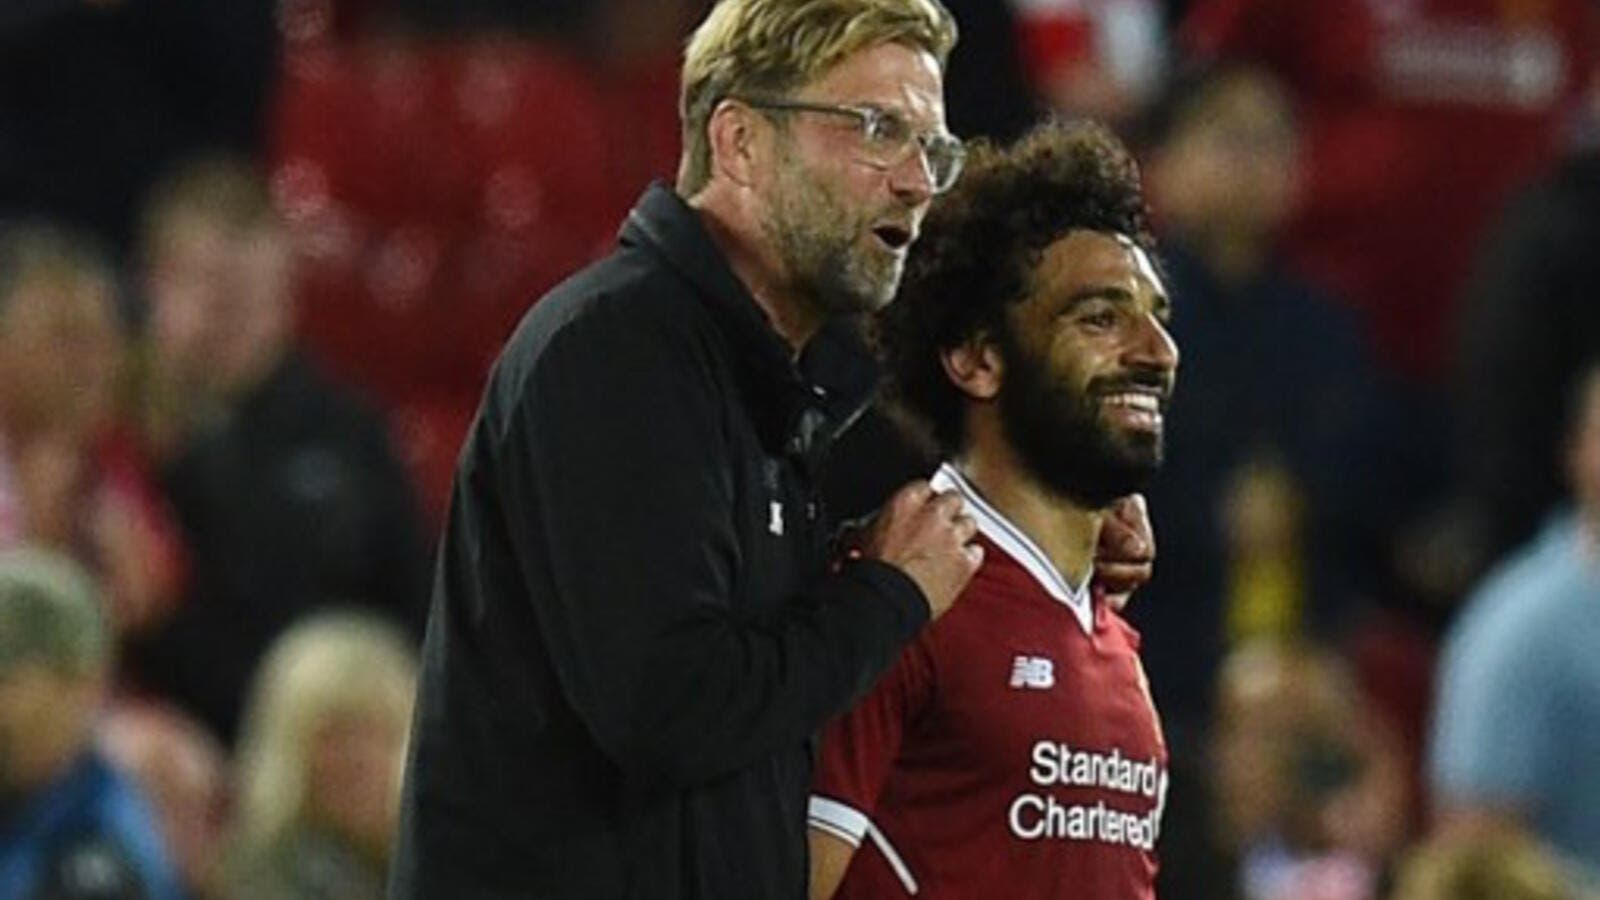 Salah sustained a groin injury last Wednesday during the Champions League quarter finals first leg match